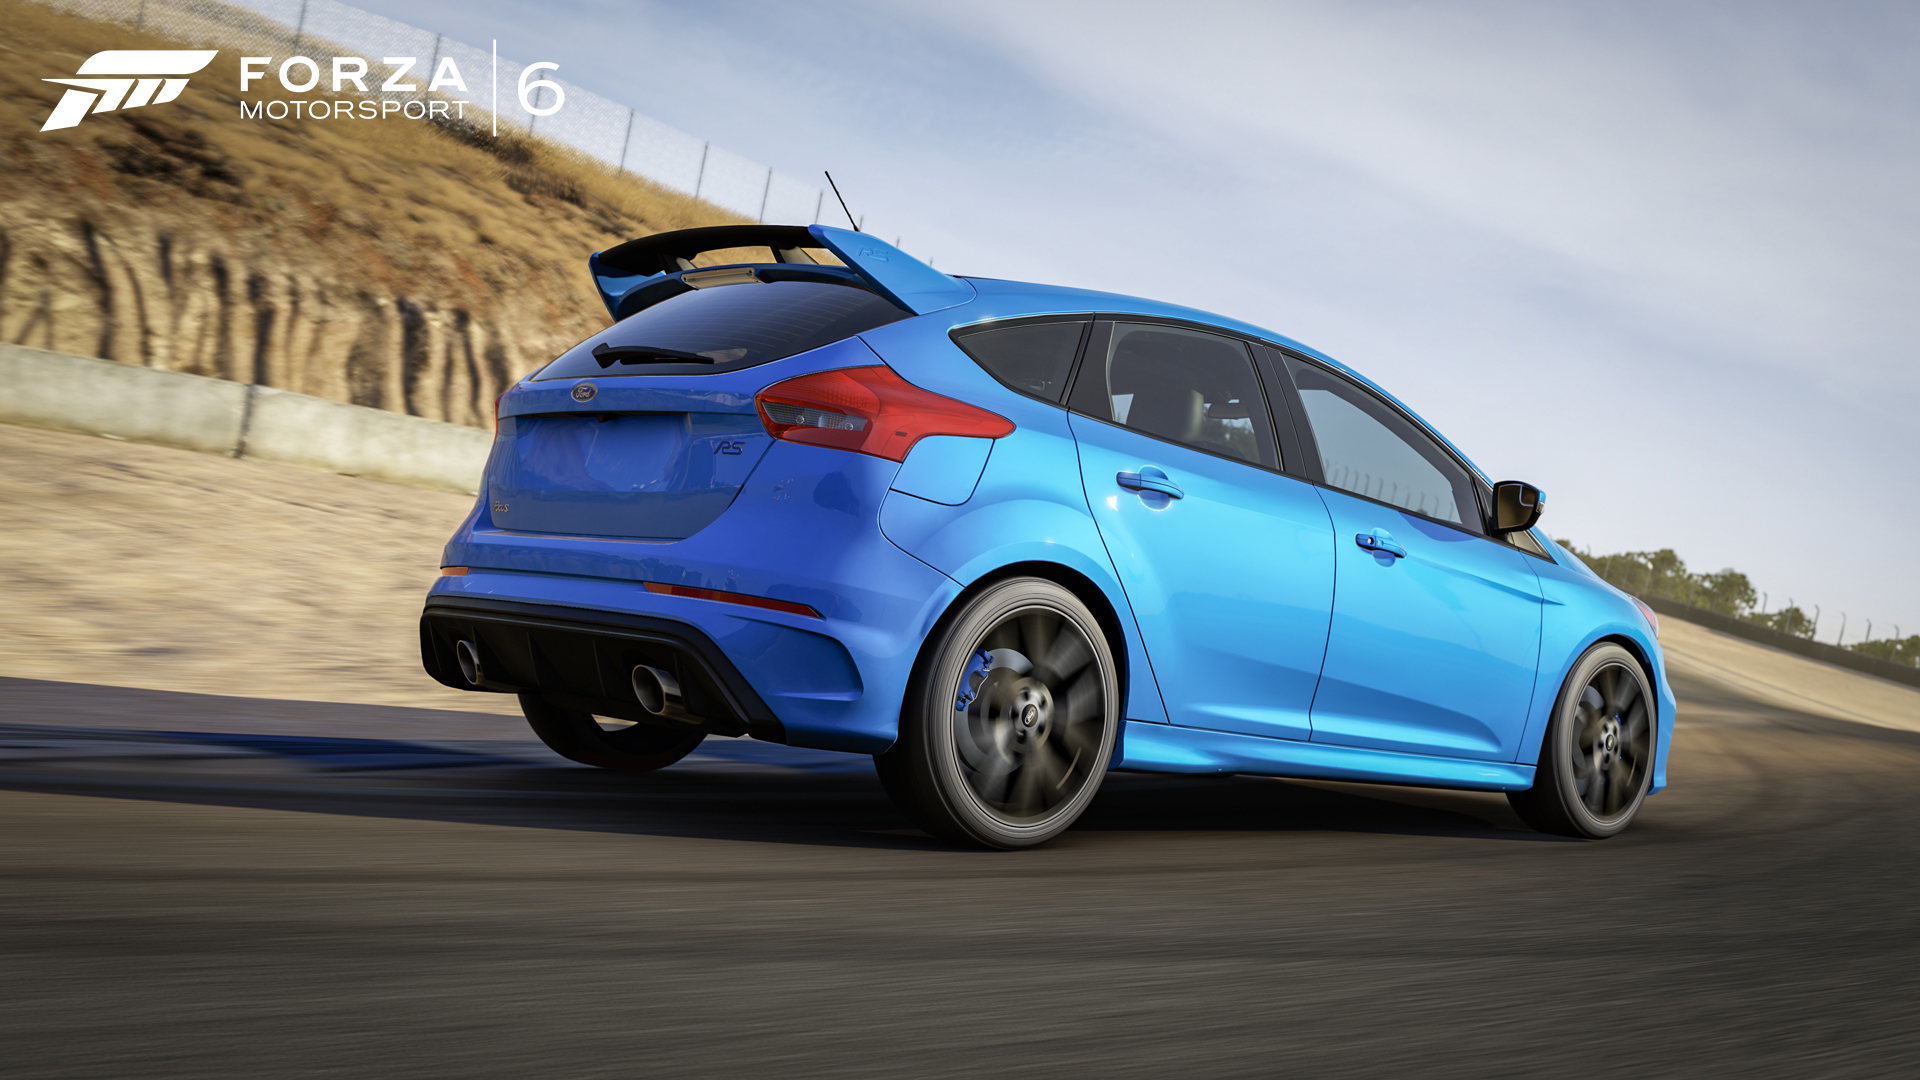 2017 Ford Focus Rs Fondo De Pantalla Hd Fondo De